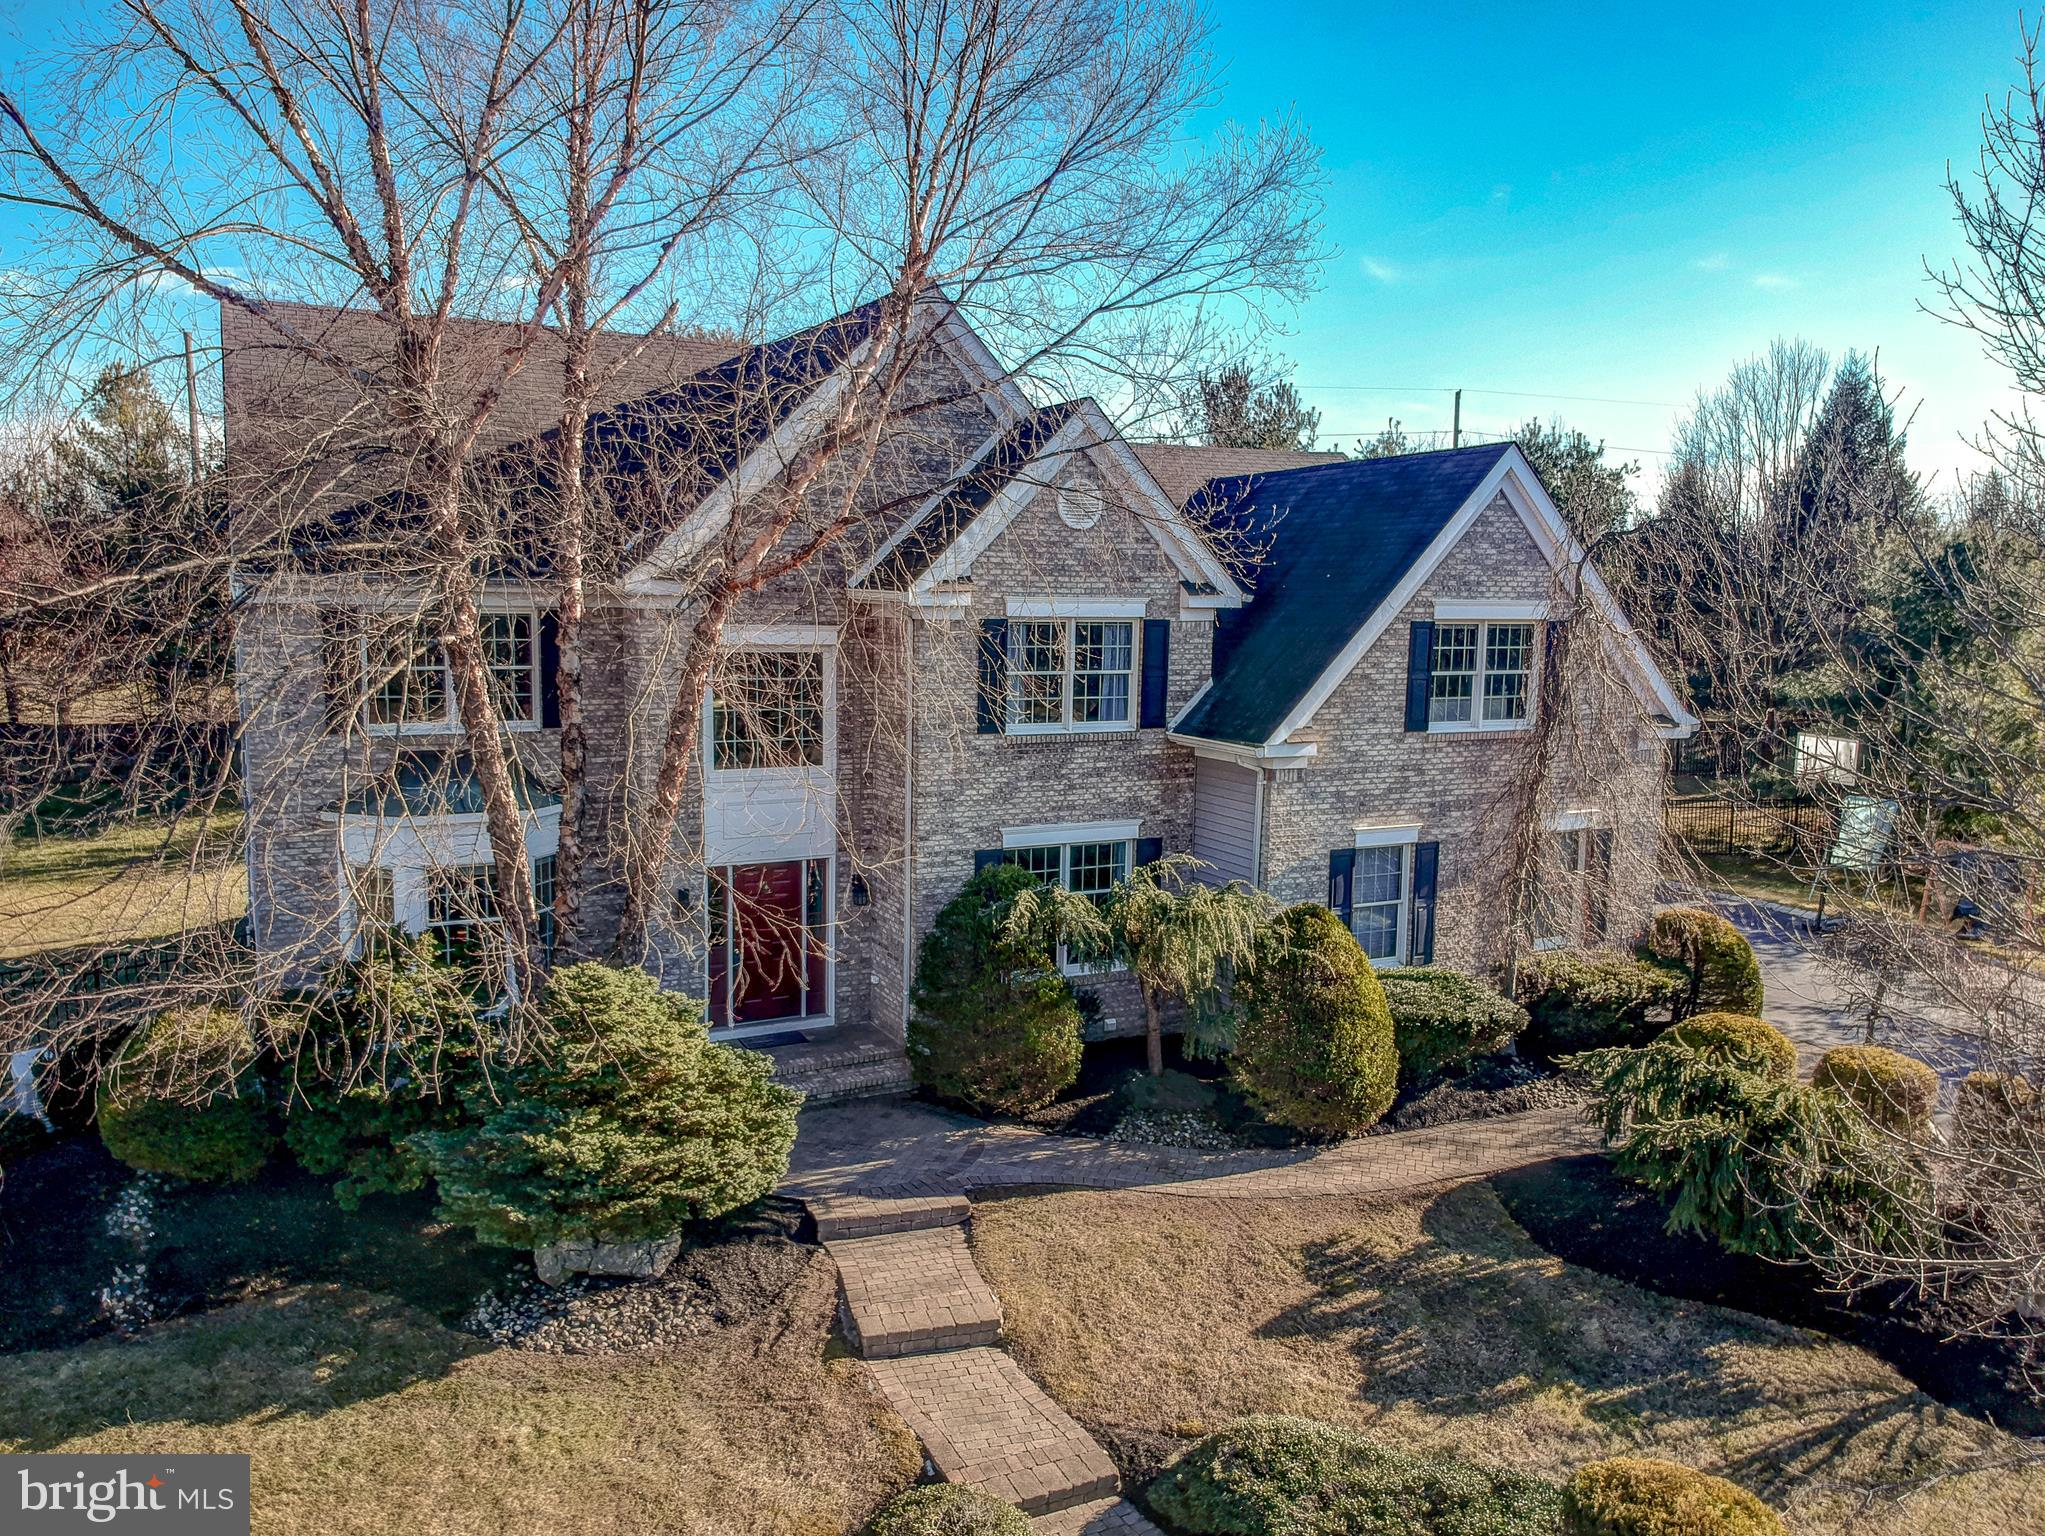 10 BENJAMIN COURT, WEST WINDSOR, NJ 08550